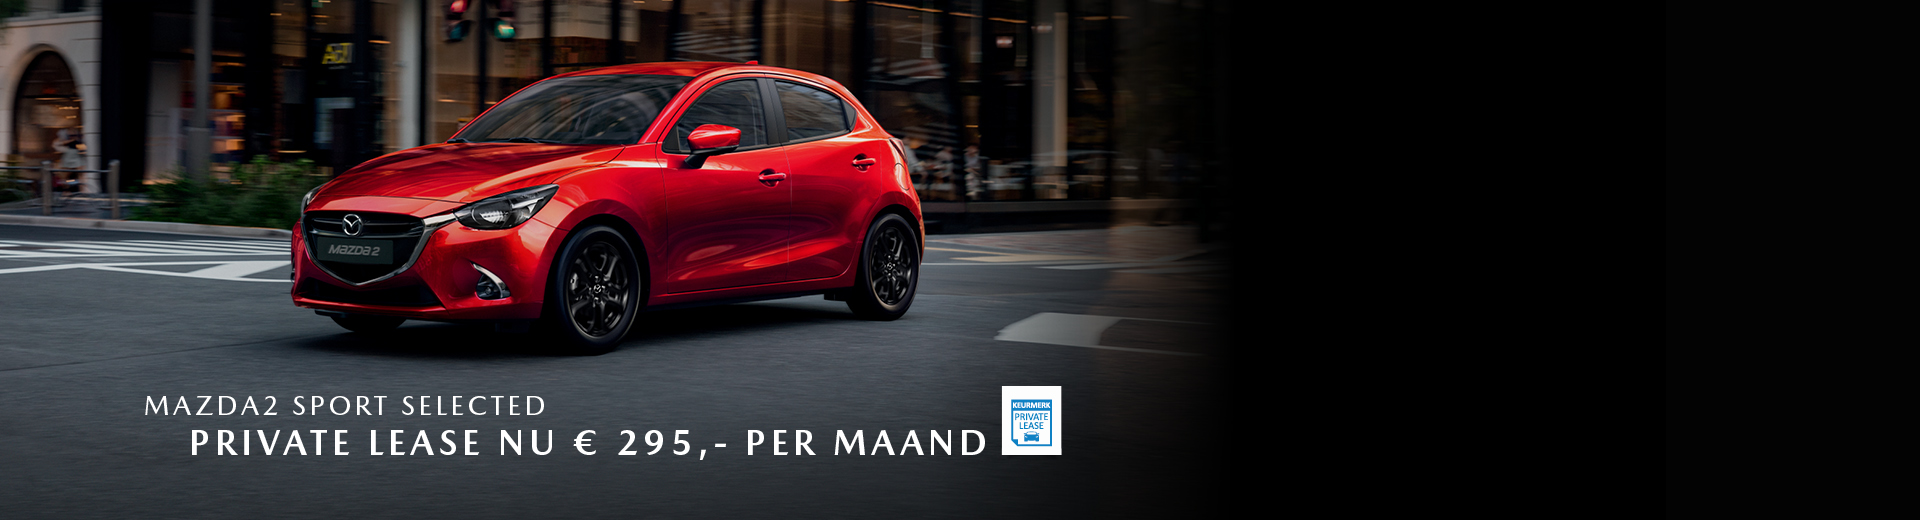 180854 Mazda Nieuwe stijl 2019_Banner 1920x520px_Private lease_M2 Sport Selected [opmaak 01]